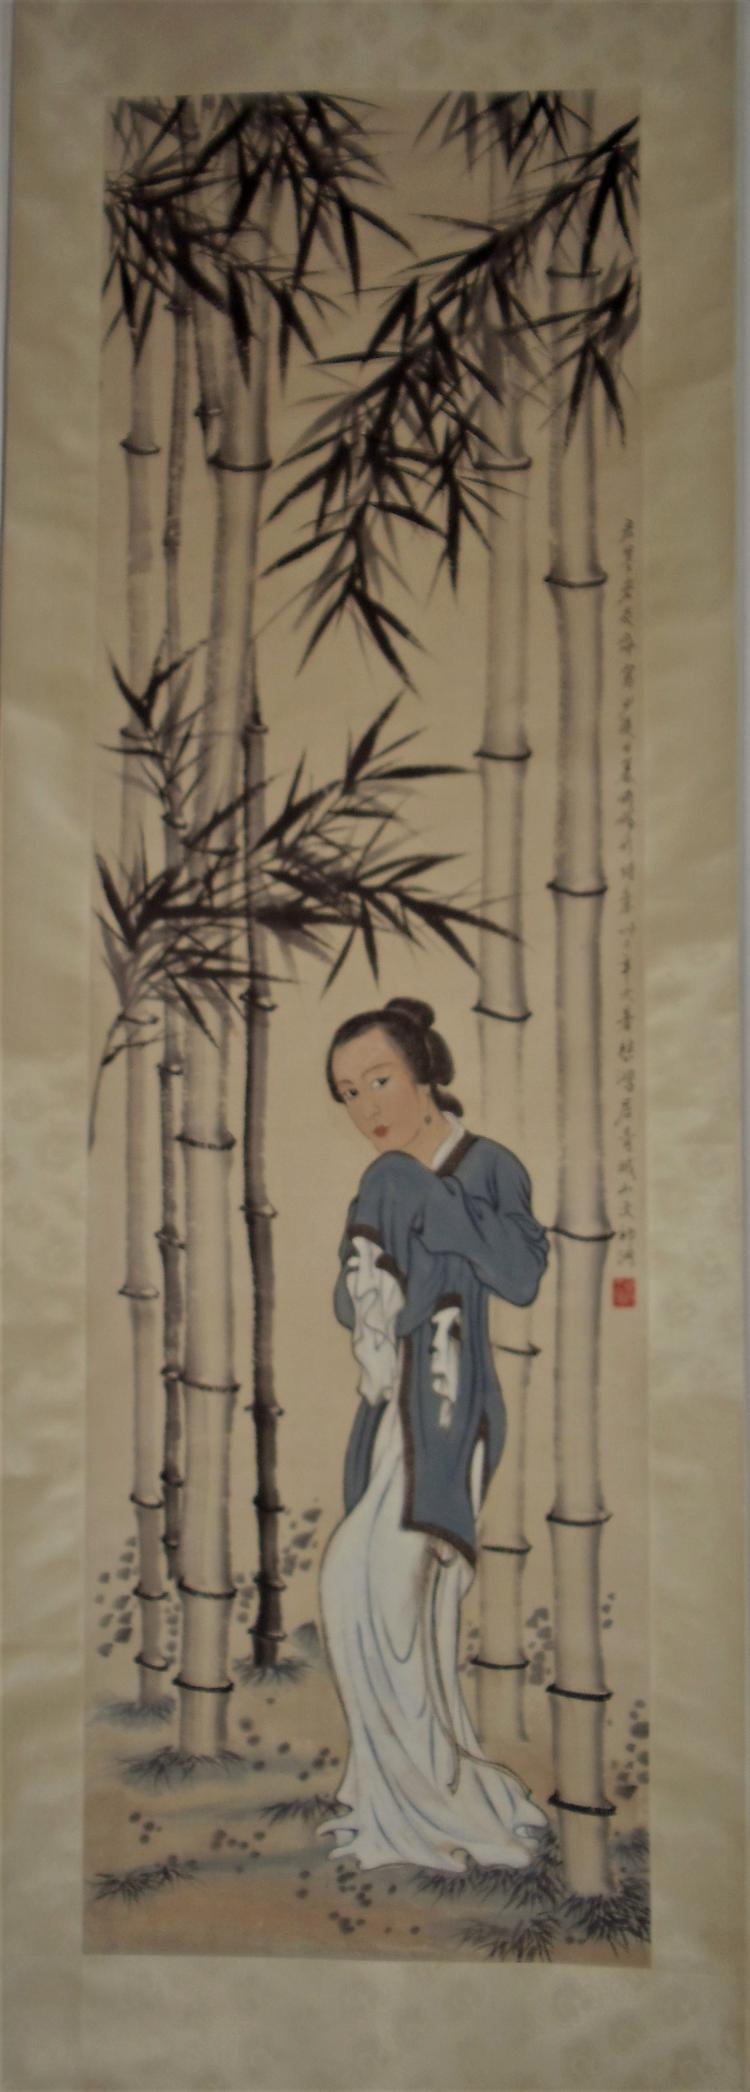 Xu Beihong (1895-1953) / A Traditionally Dressed Lady in Bamboo Grove as Portrayed by Tang Dynasty Poet Du Fu